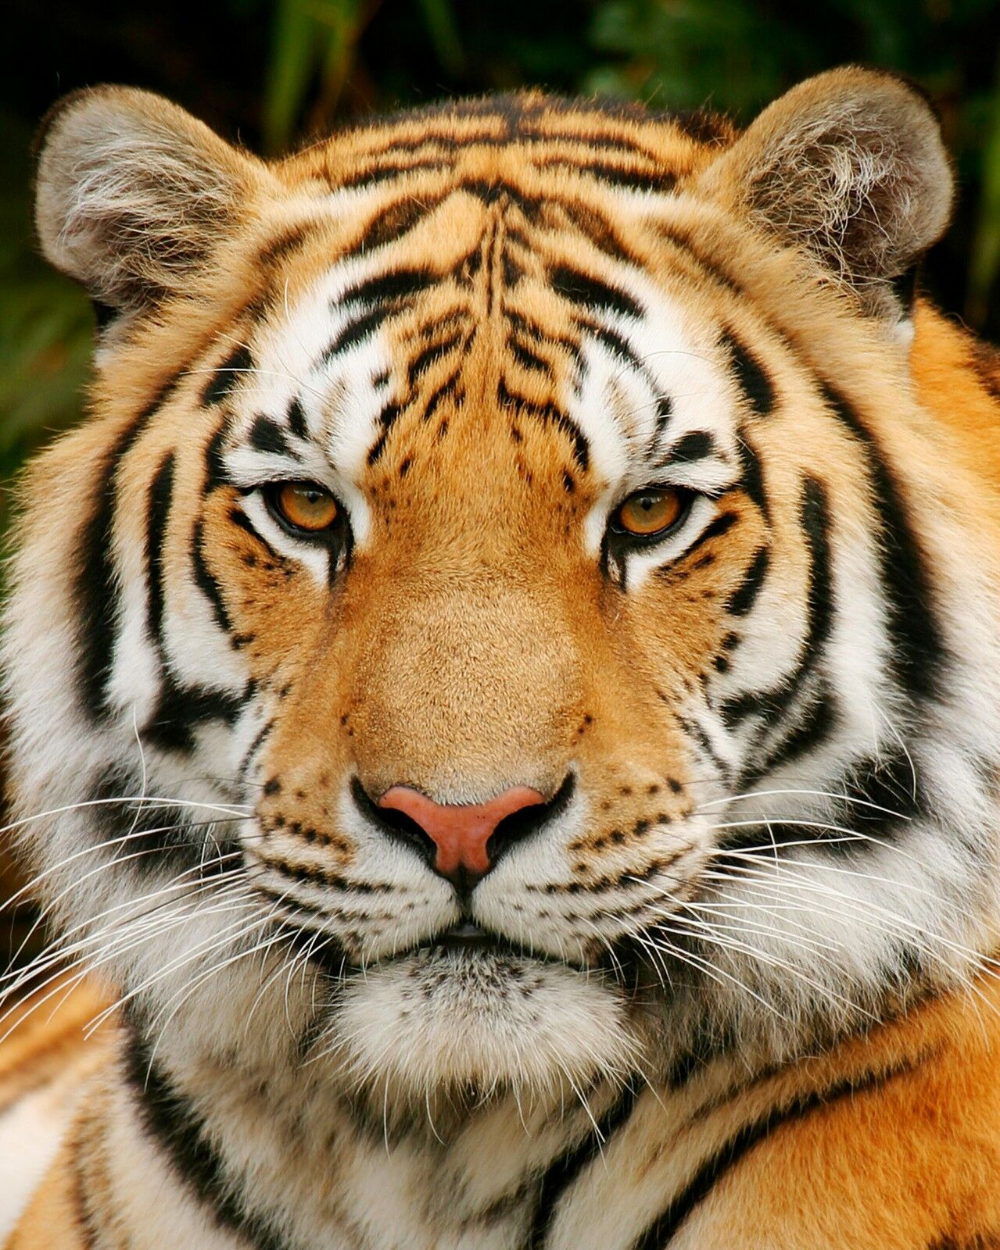 Tiger Wildcat 8 X 10 8x10 Glossy Photo Picture Image 7 Ebay Wild Cats Tiger Pictures Tiger Face